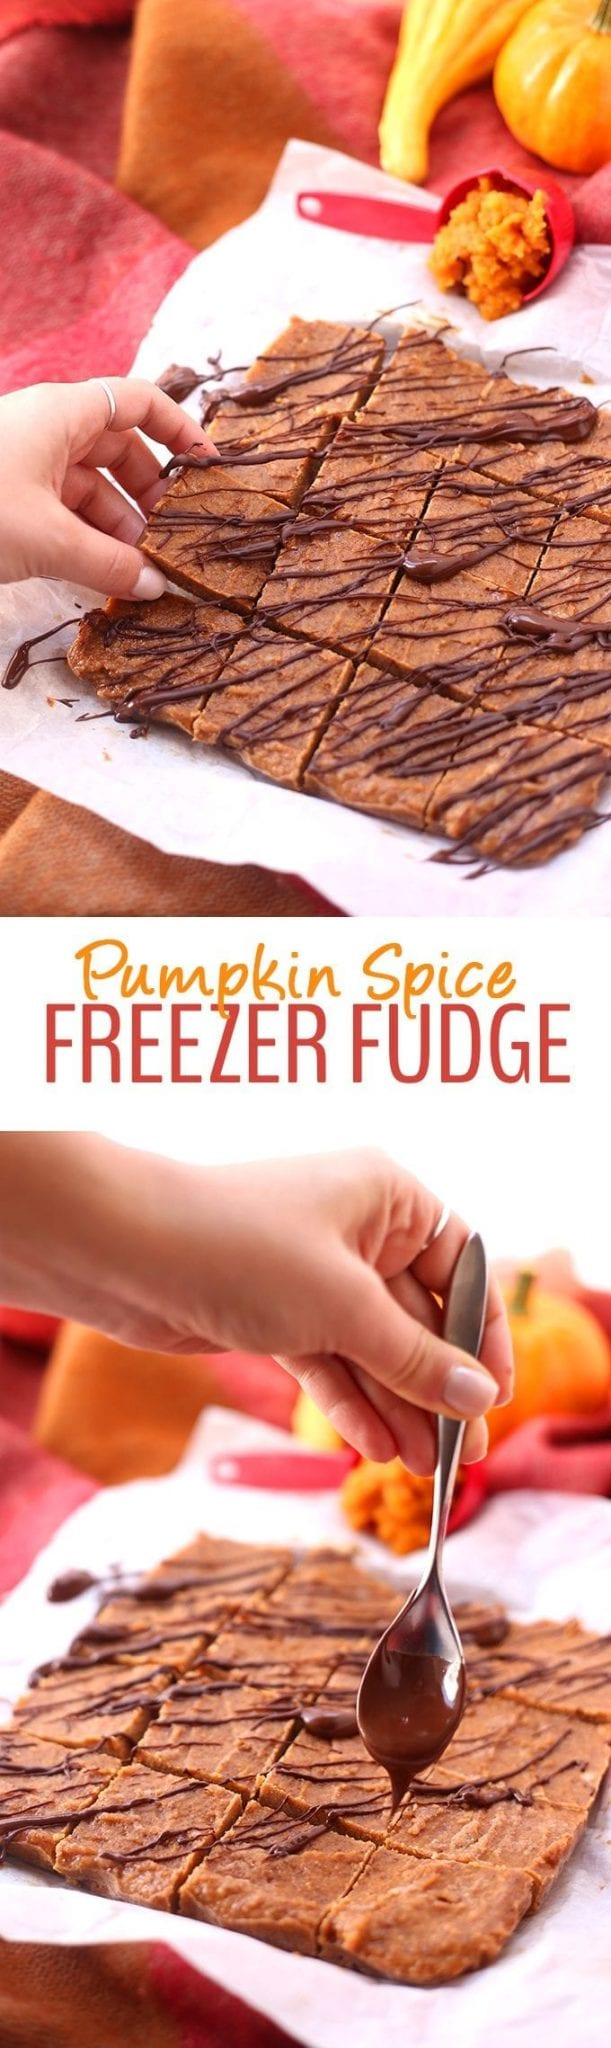 Healthy Pumpkin Spice Freezer Fudge made with just 5-Ingredients! Free of refined sugar, dairy and gluten, this healthy dessert recipe will make you fall in love with fall.